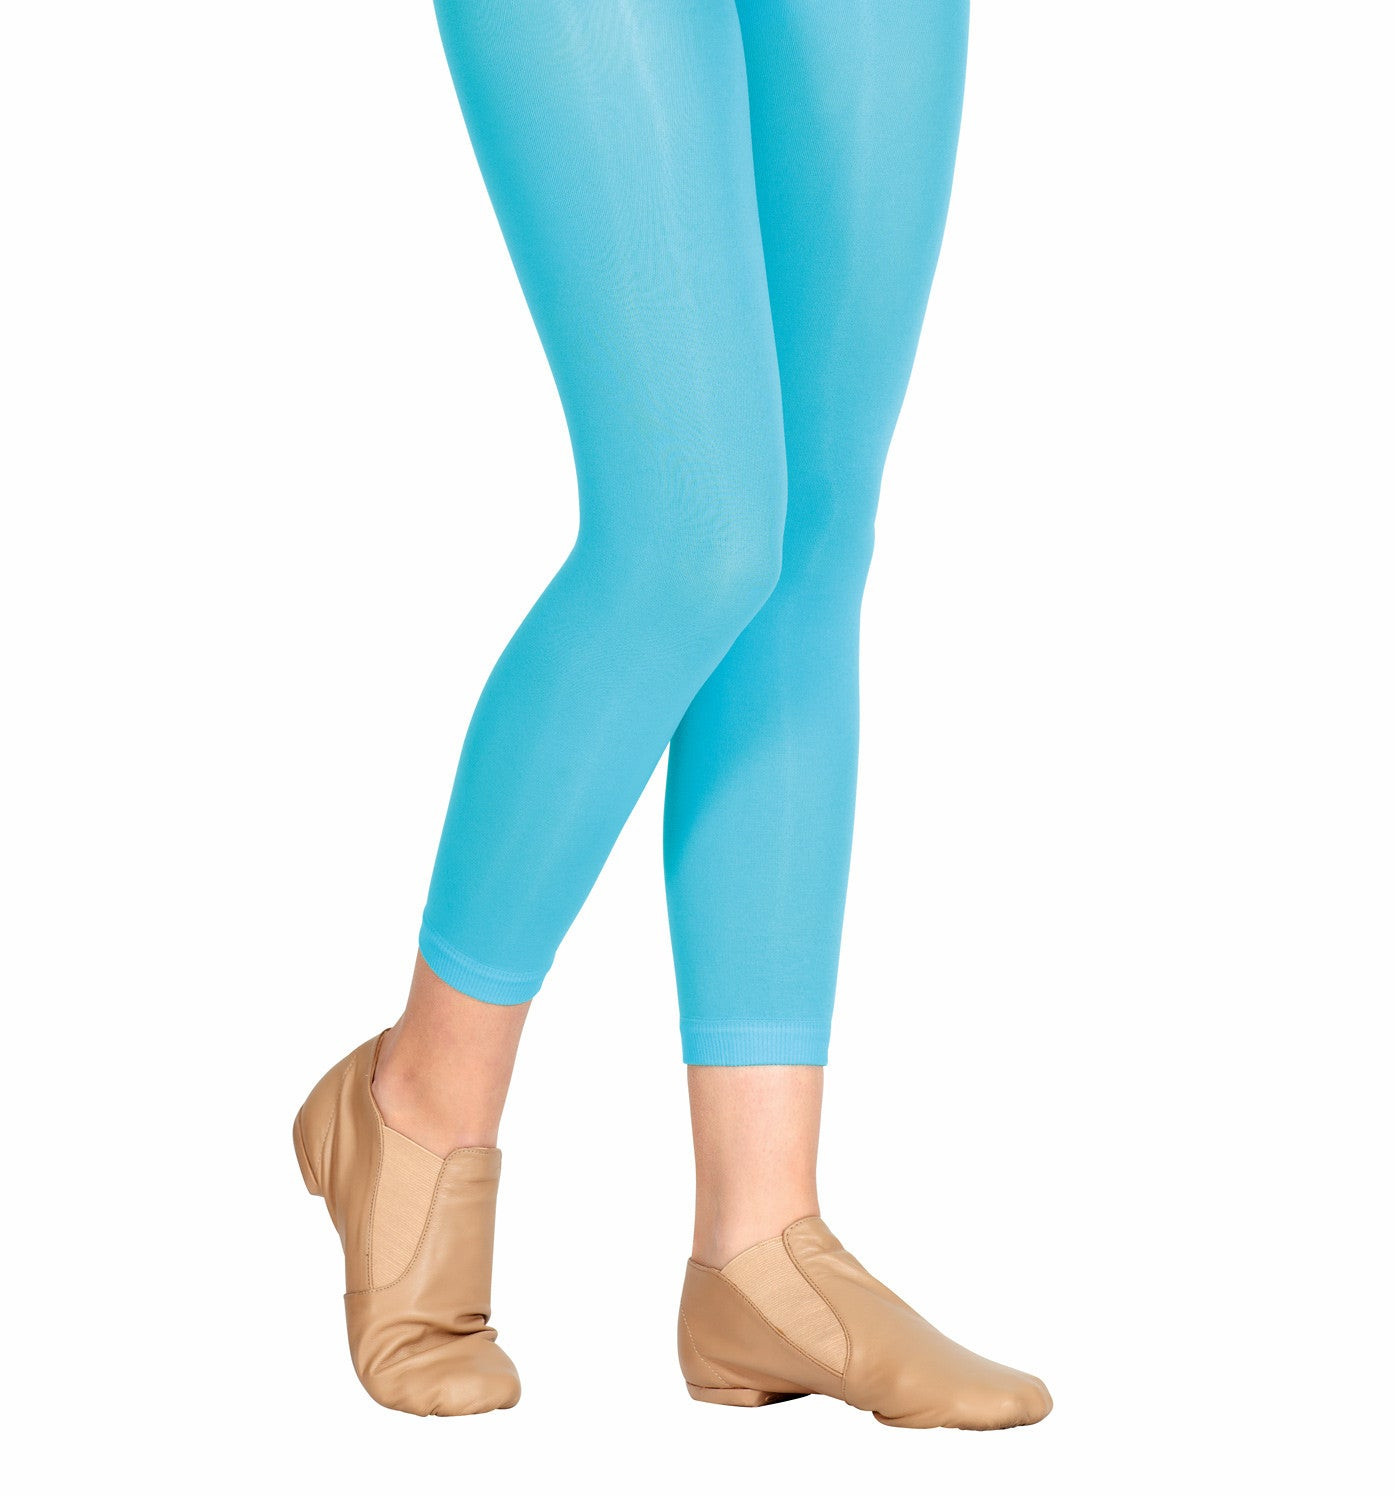 Adult Crop Tights Solid for Women